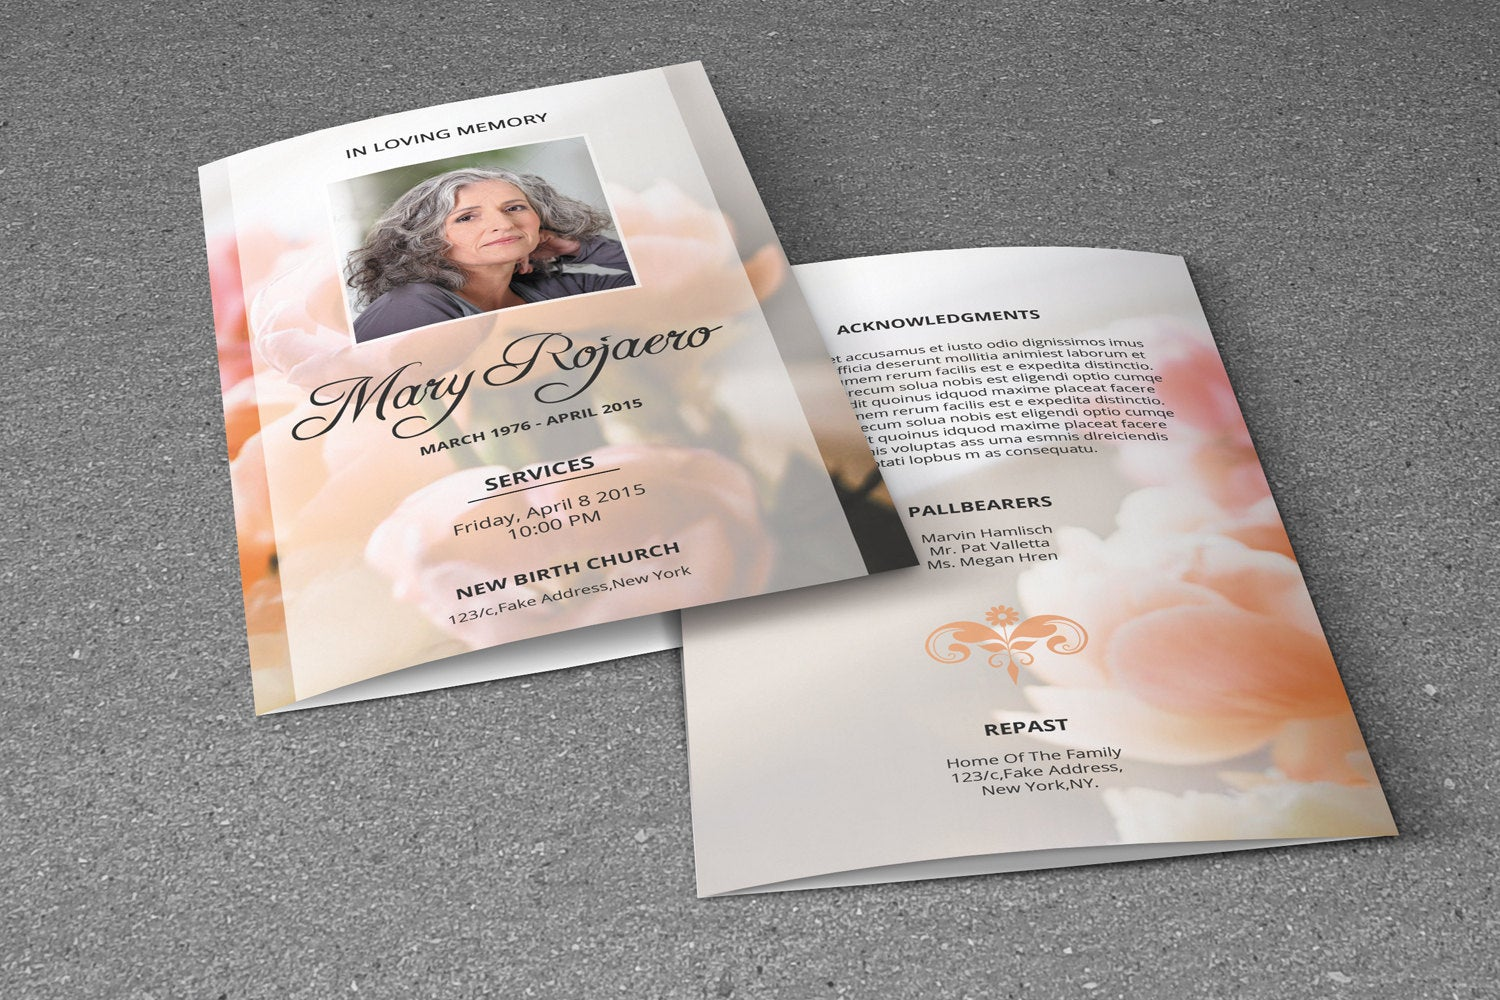 Floral Funeral Program Template, Photoshop & MsWord Template example image 3